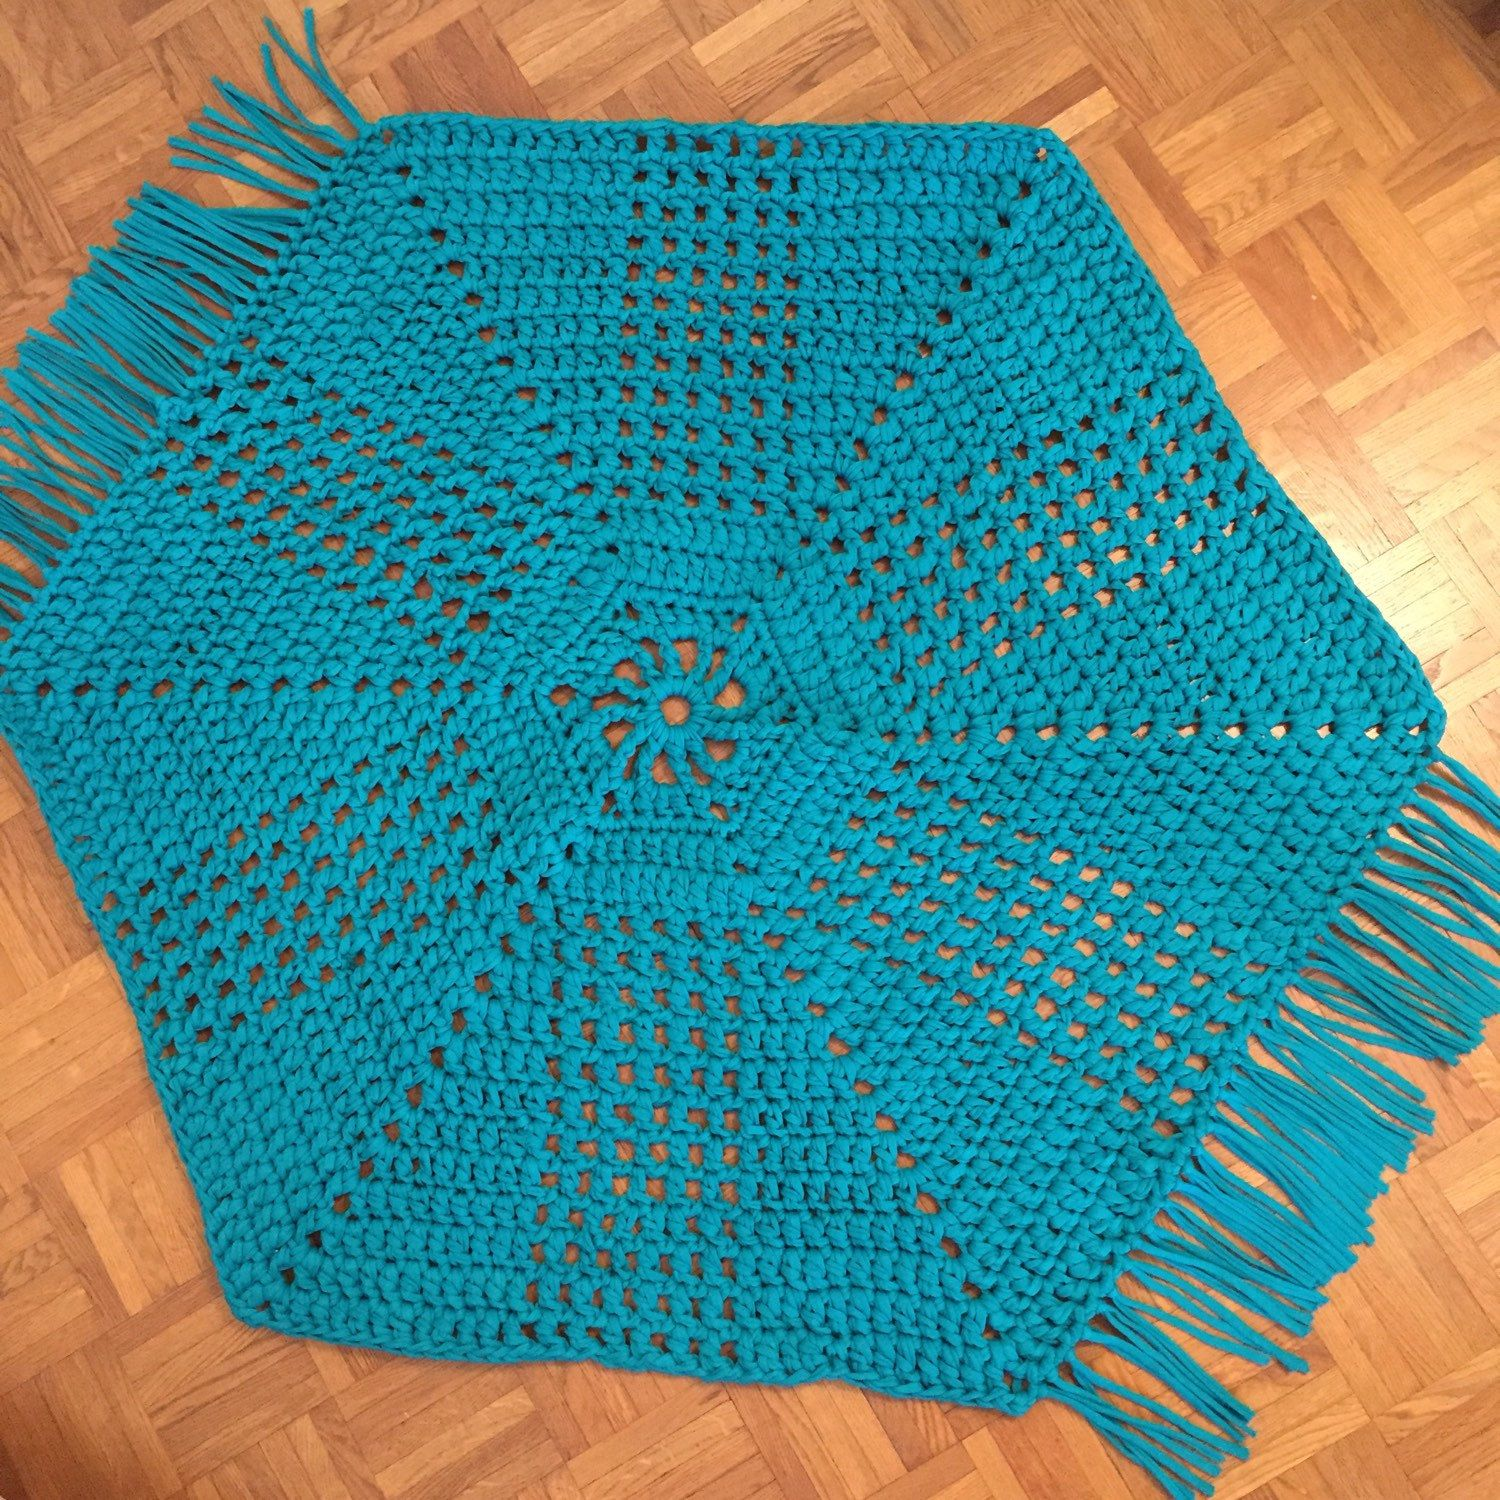 This KOTHAR rug was specially made larger (1m diameter) and in teal to match its new owner's dream✨